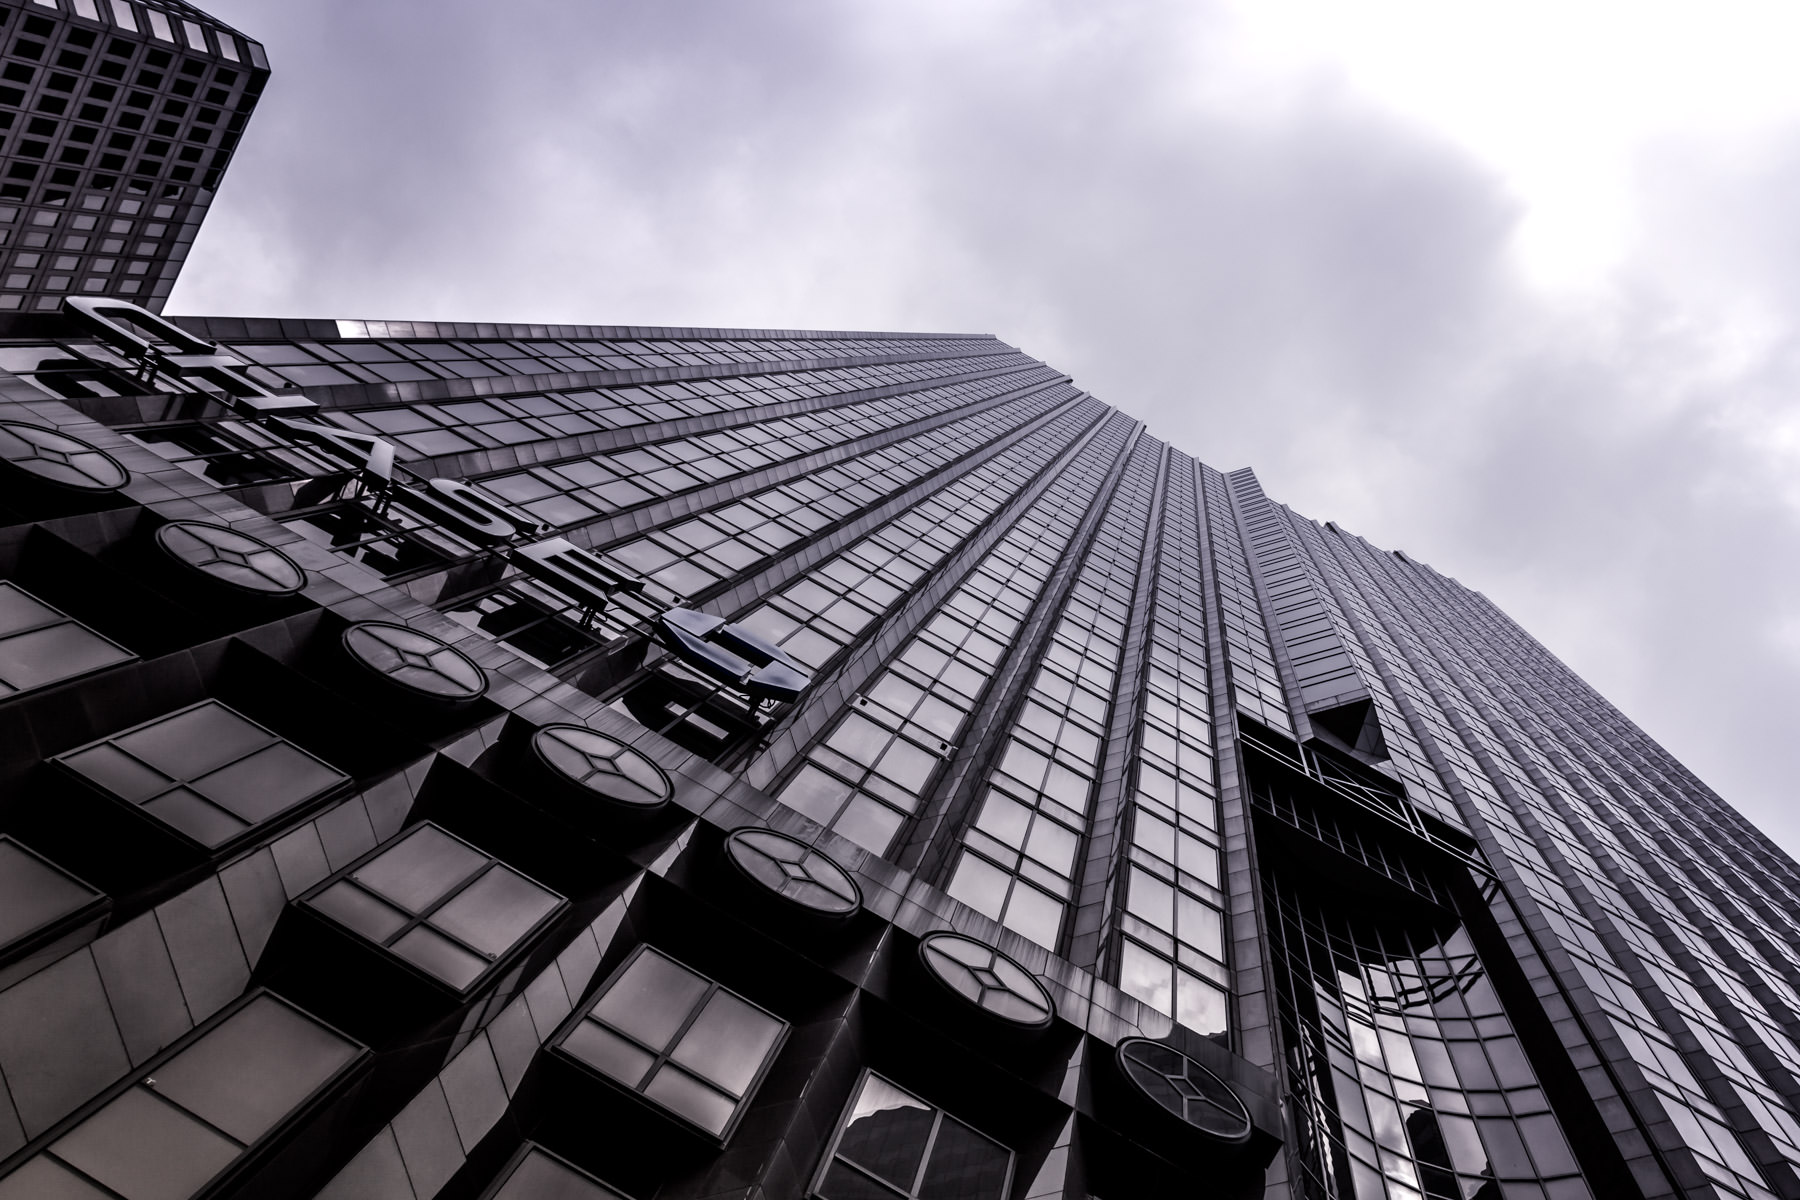 Dallas' 55-story-tall Chase Tower rises into the overcast sky of North Texas.